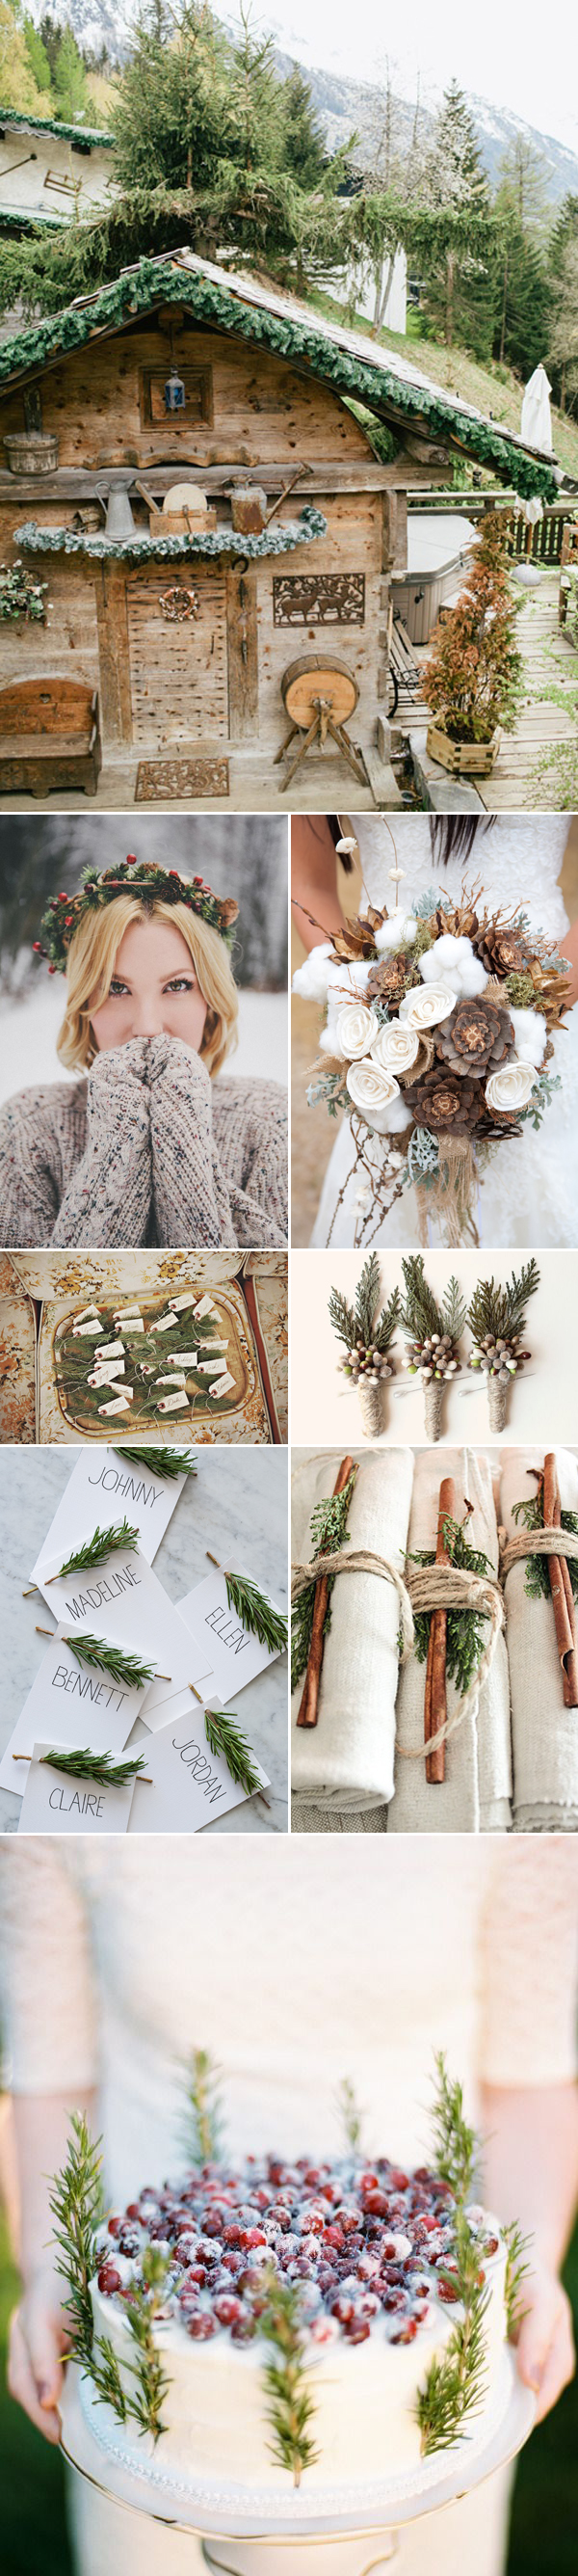 rustic mountain winter wedding color palette inspiration board | via junebugweddings.com